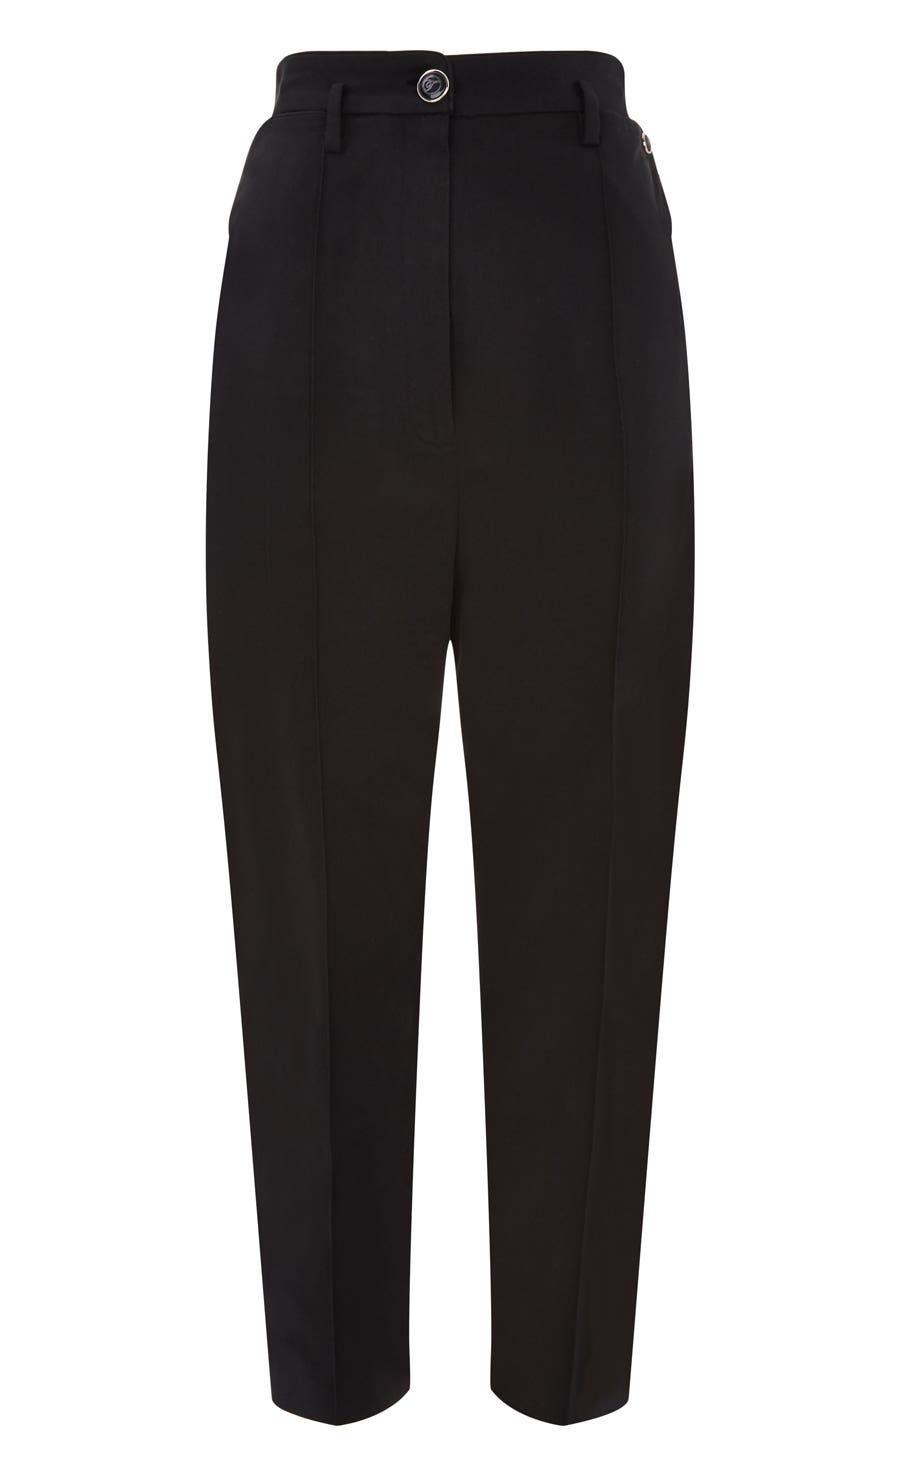 Blueberry Tailoring Trousers, Black